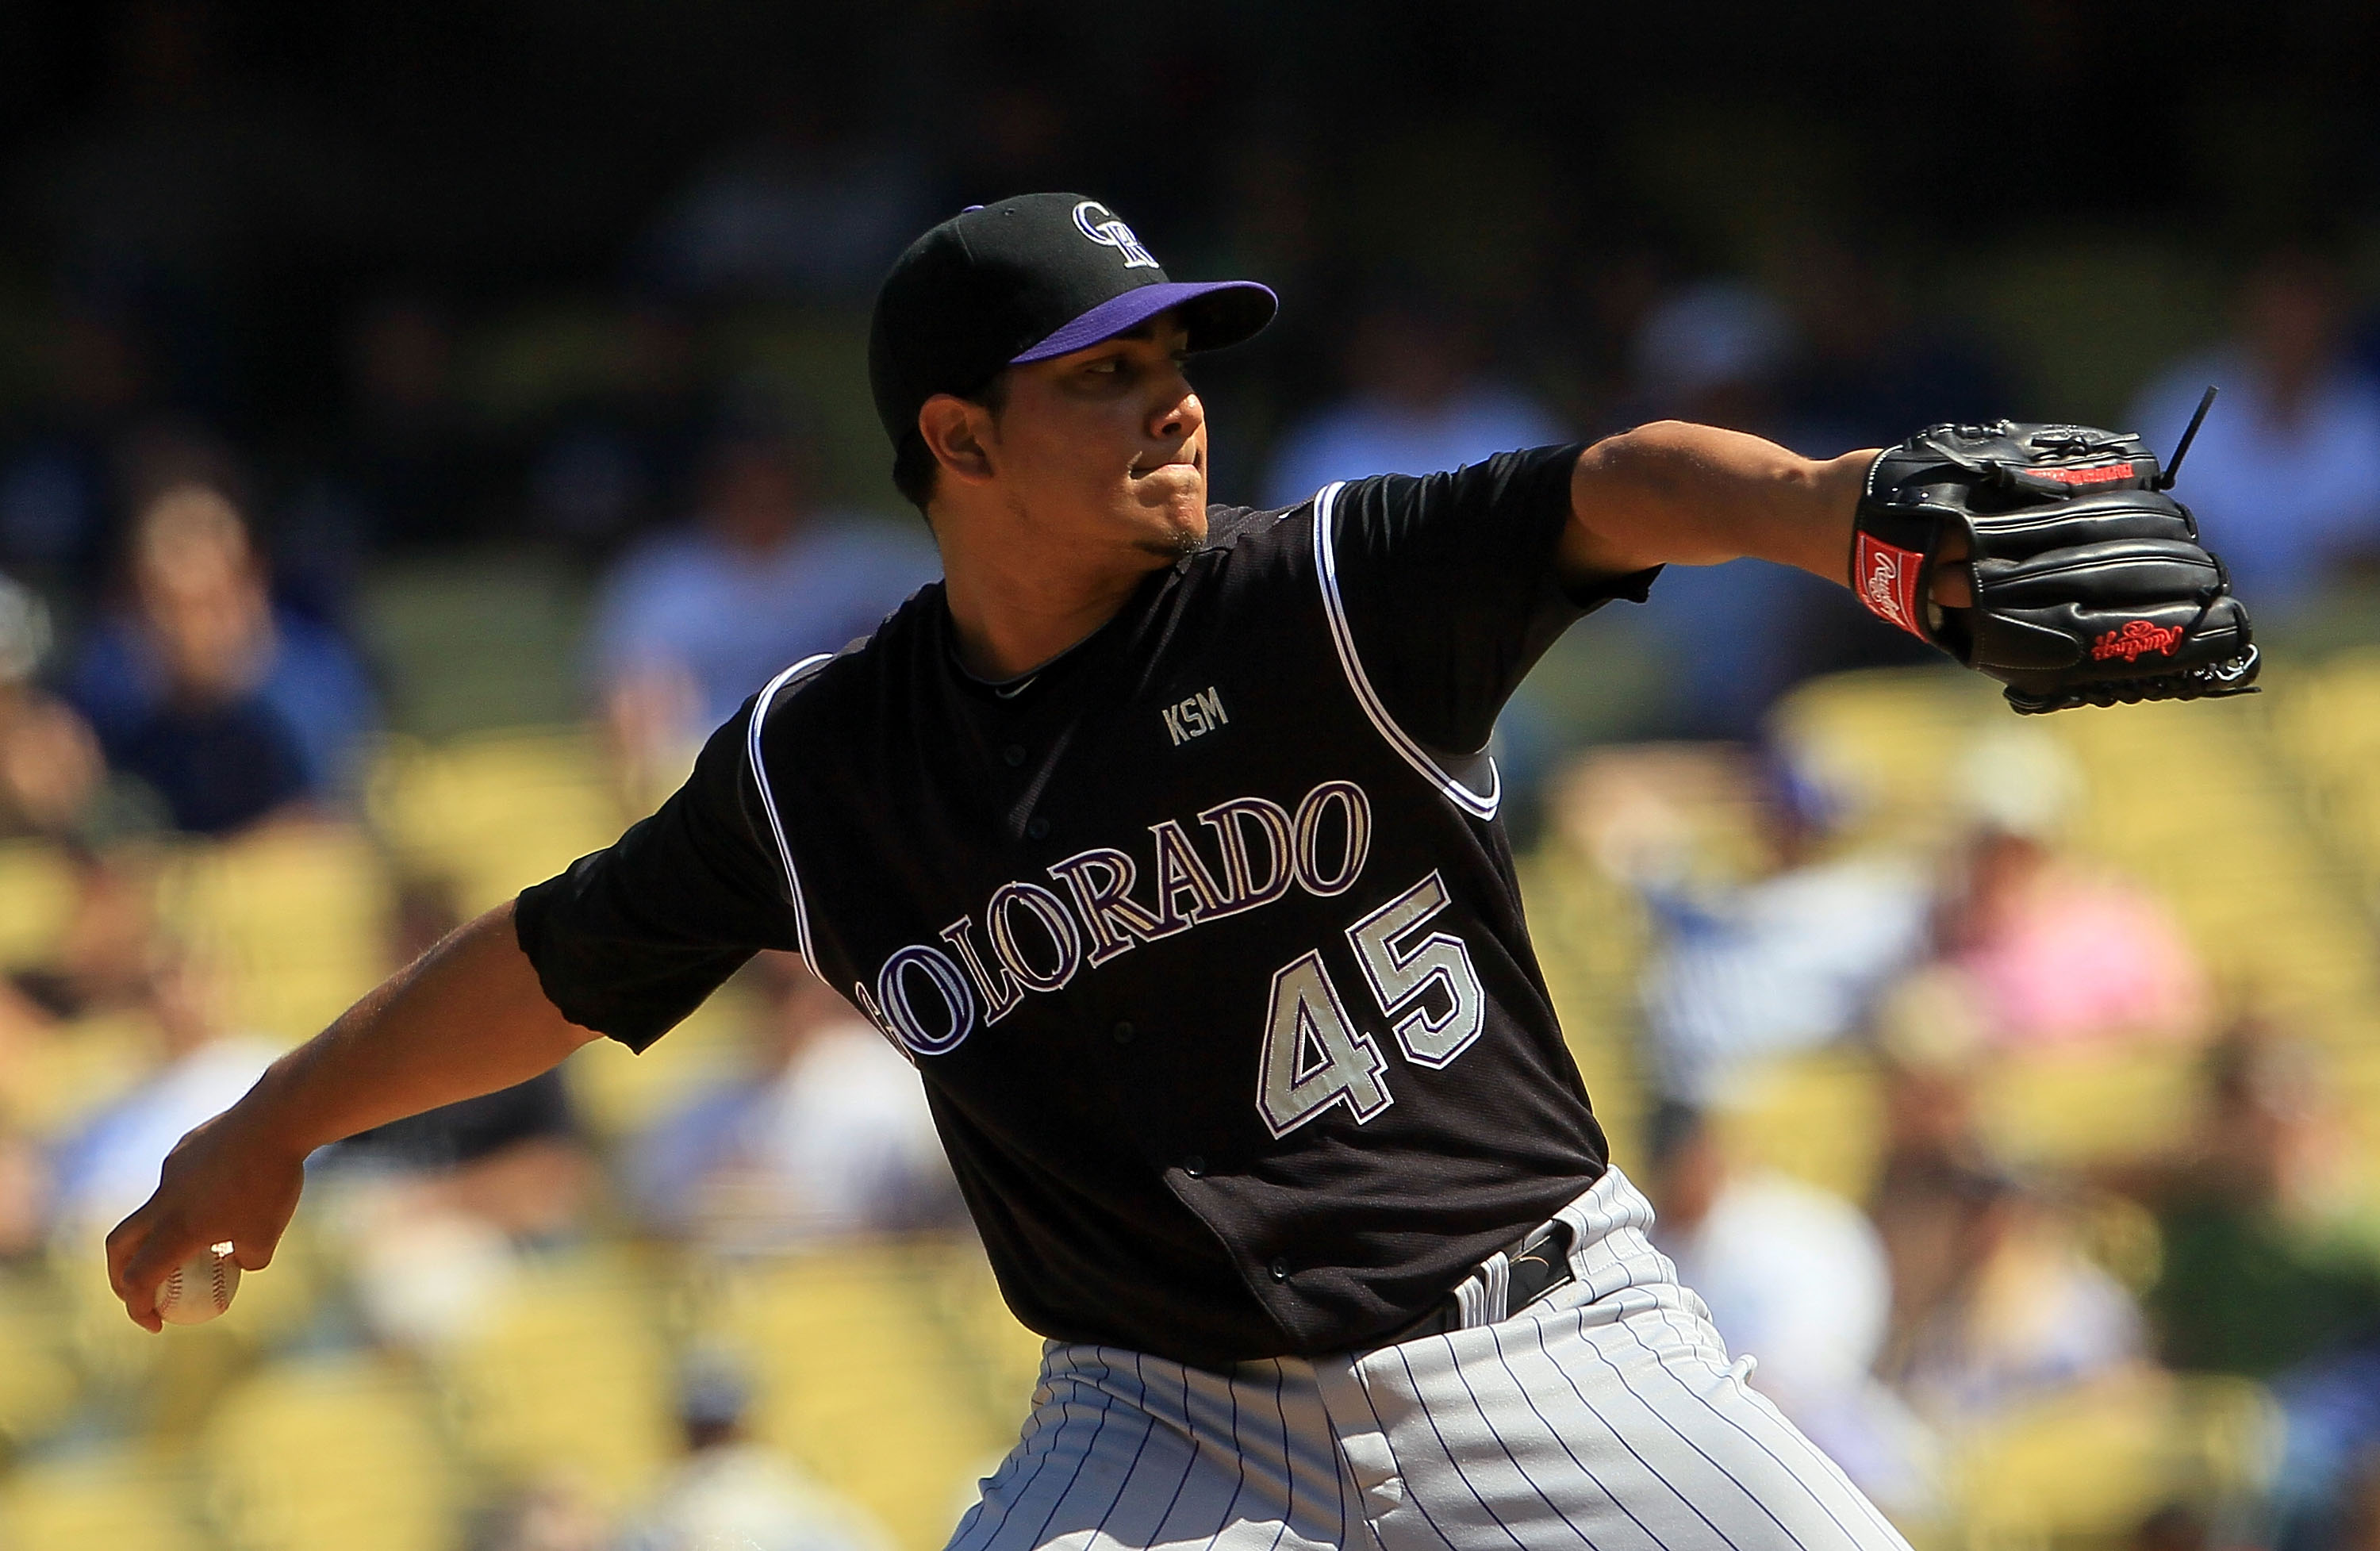 LOS ANGELES, CA - SEPTEMBER 18:  Jhoulys Chacin #45 of the Colorado Rockies pitches against the Los Angeles Dodgers in the game at Dodger Stadium on September 18, 2010 in Los Angeles, California.  (Photo by Jeff Gross/Getty Images)